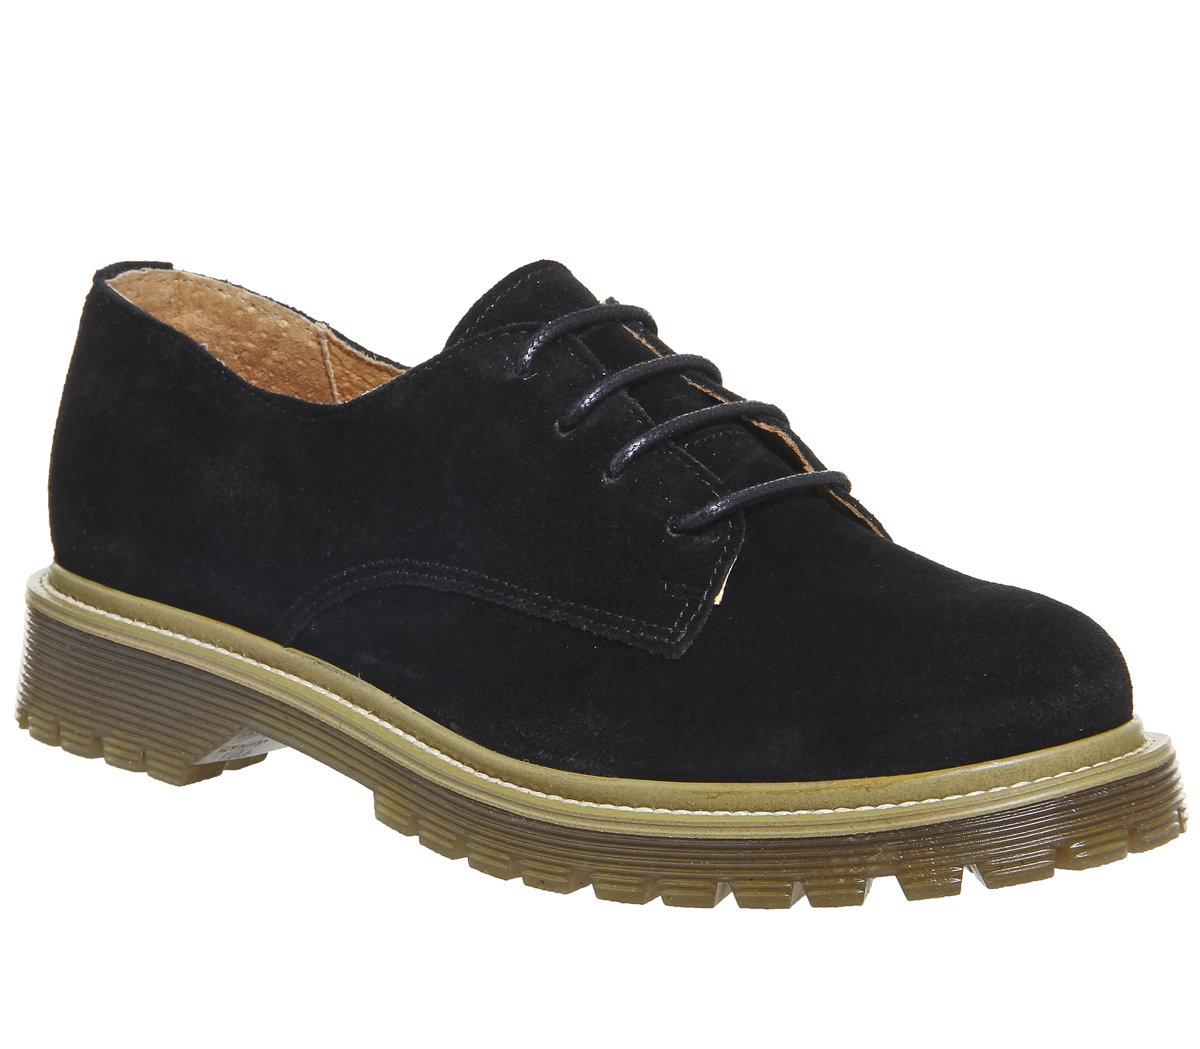 Womens Office Force Lace Up Flats BLACK SUEDE Flats